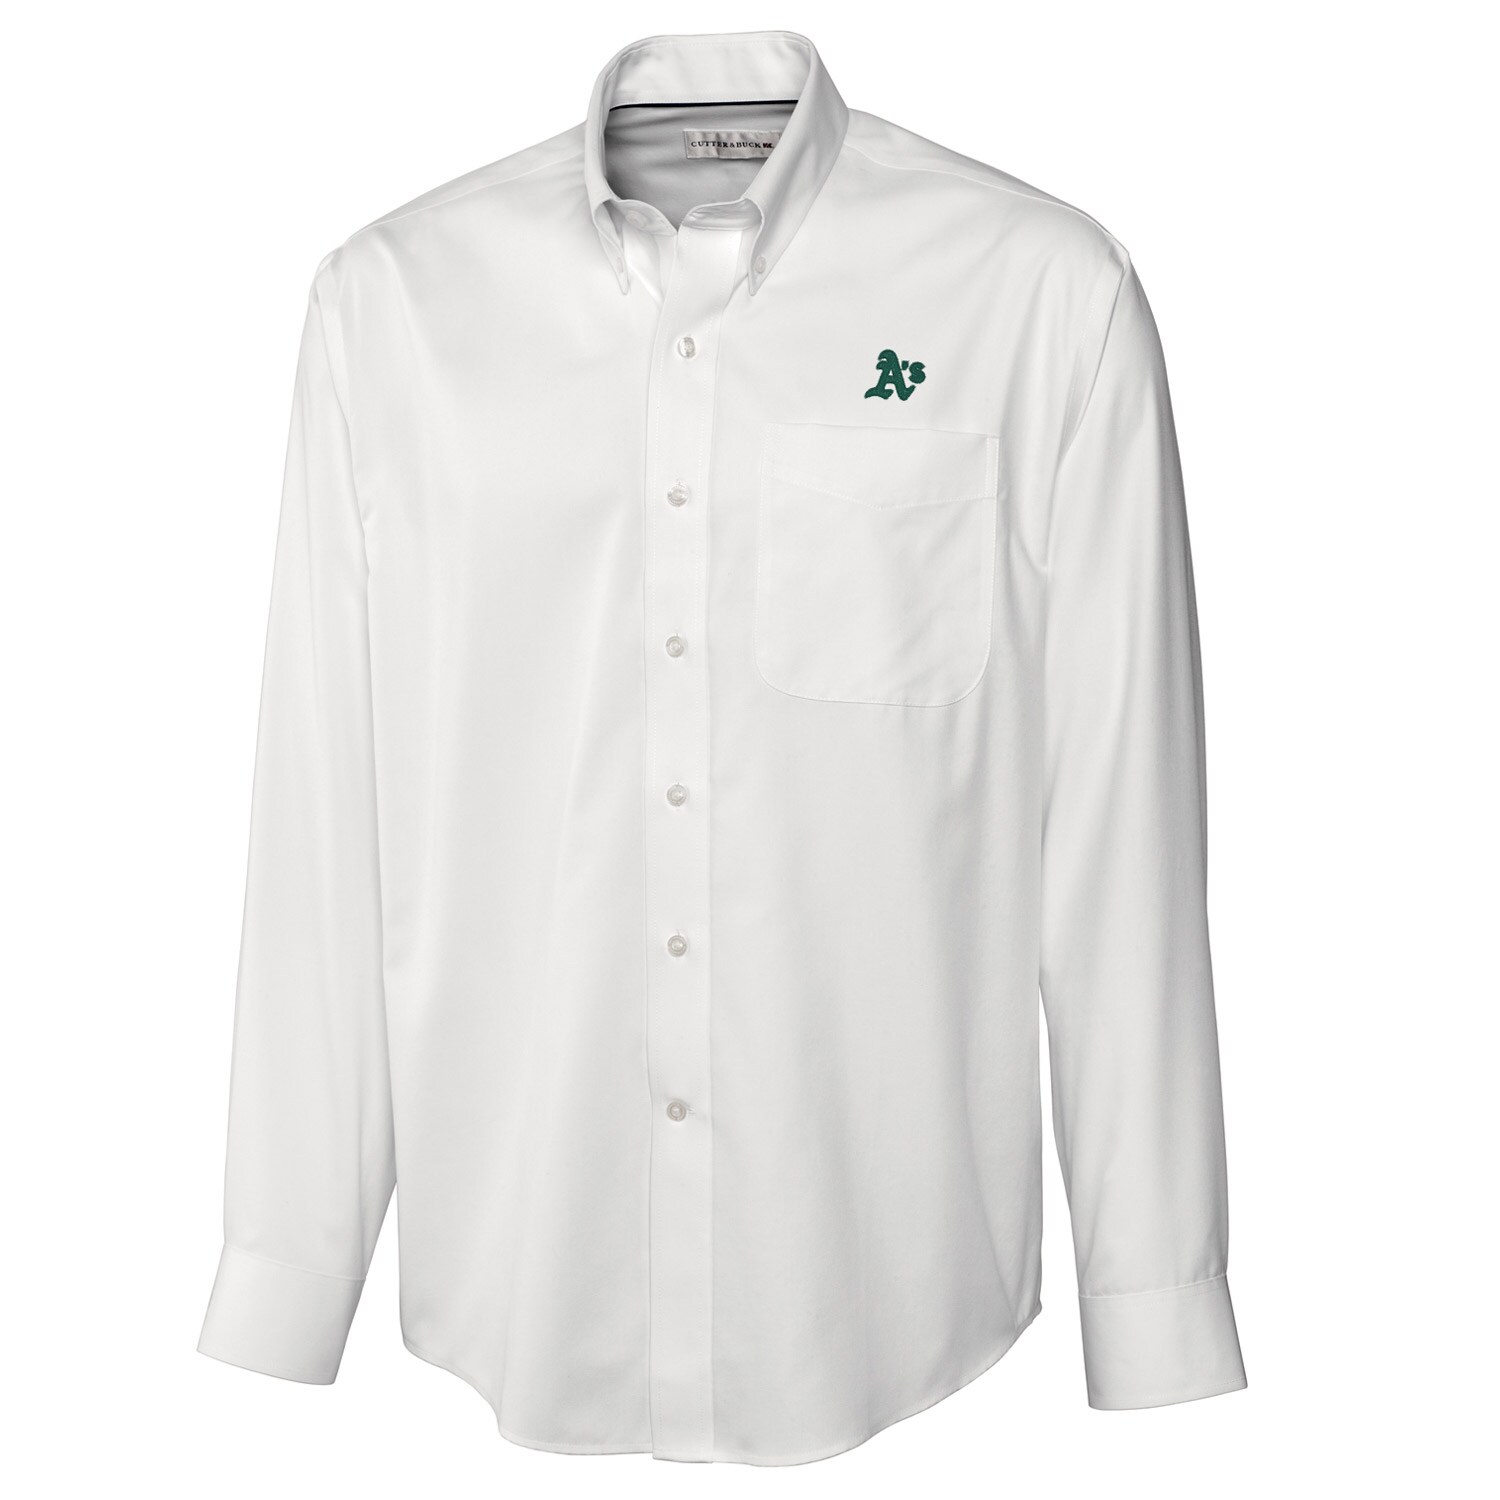 Oakland Athletics Cutter & Buck Big & Tall Epic Easy Care Fine Twill Long Sleeve Shirt - White